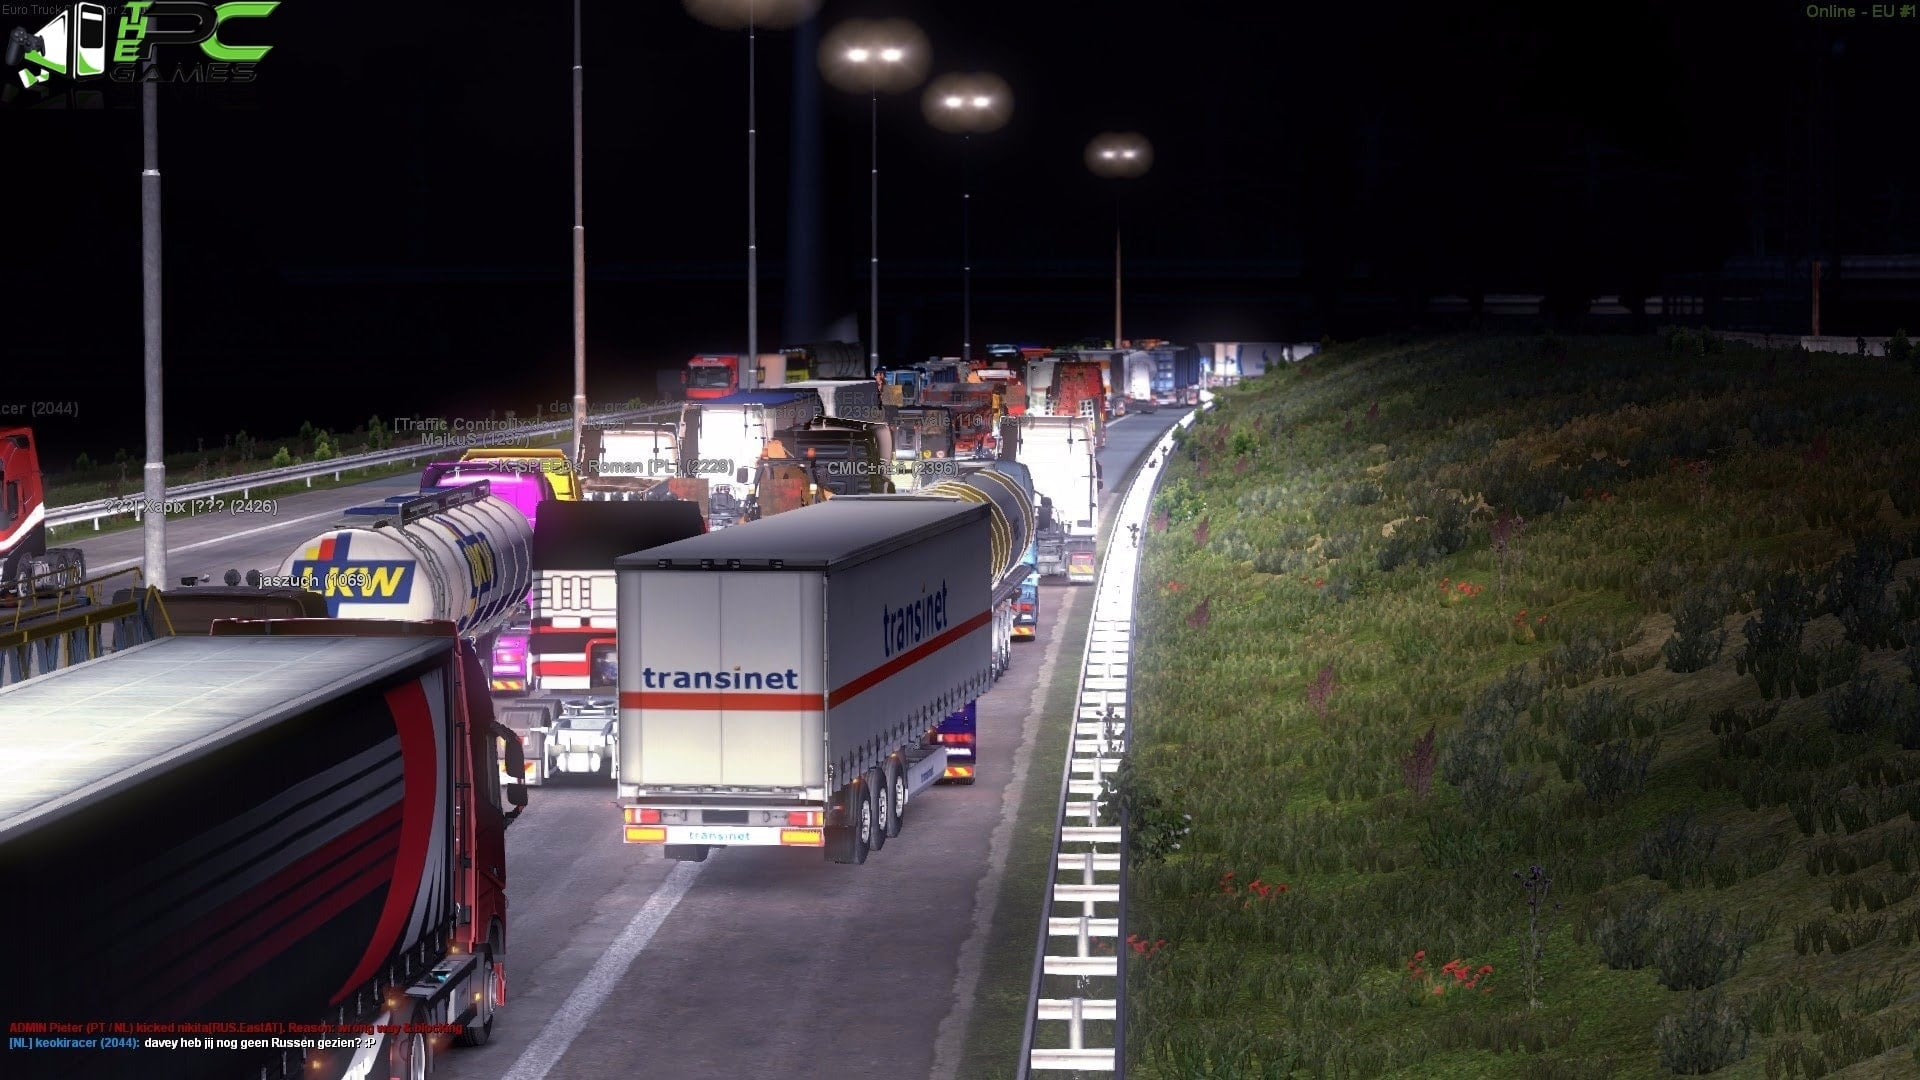 Euro truck simulator 2 multiplayer download free pc | Euro